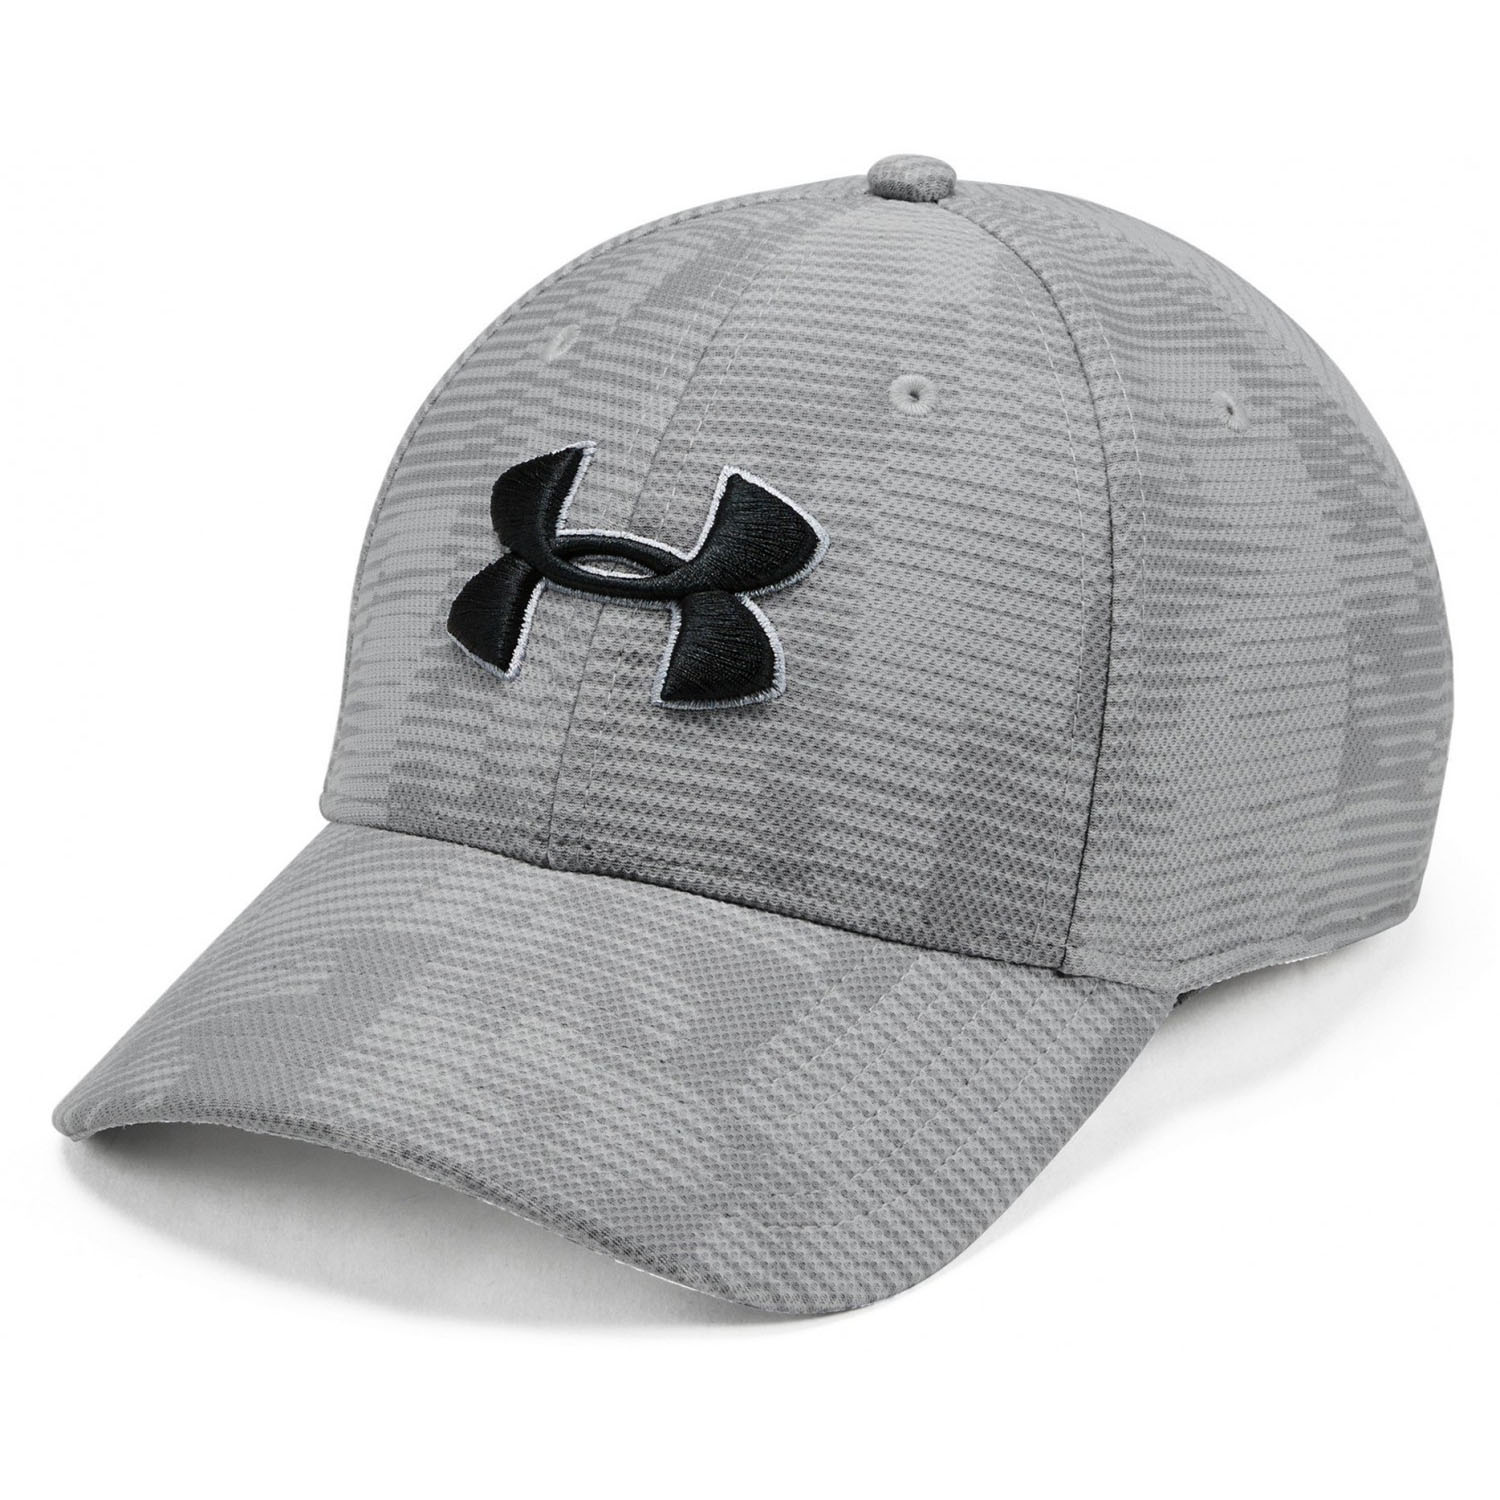 Under Armour Blitzing II Cappello Uomo